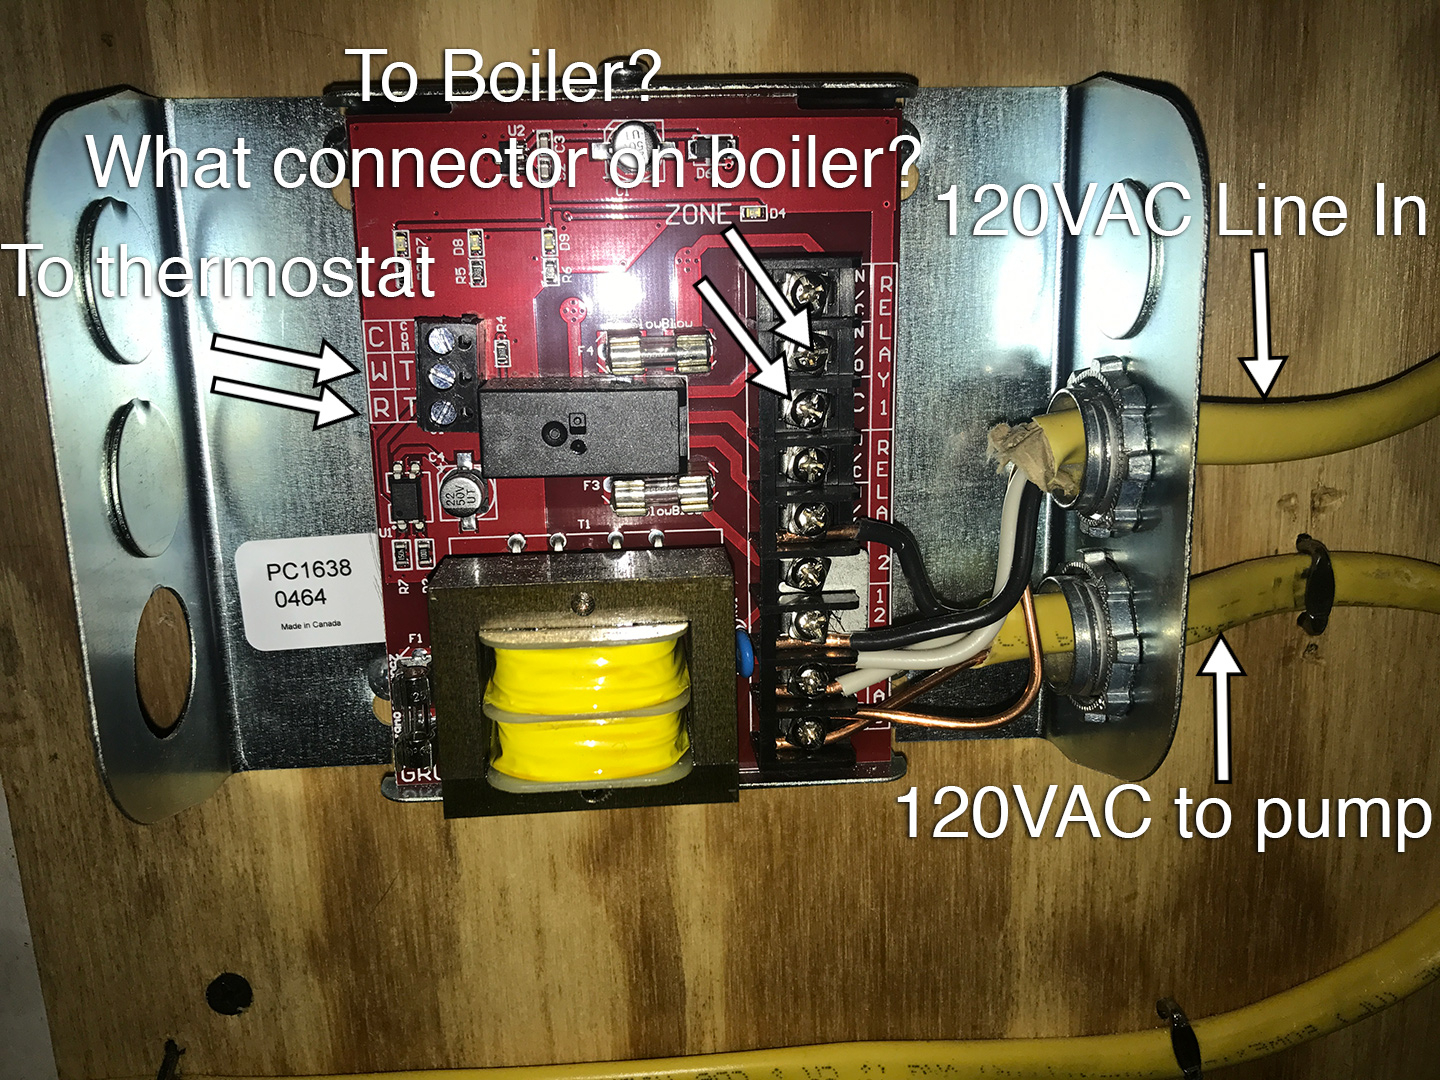 Wiring Grundfos Single Zone Relay And Pump To Rinnai E50c Boiler Diagram The Note For That Green External Connector Warning About Not Connecting A Directly Because Of Call Heat Or Dhw Energizing Circuit